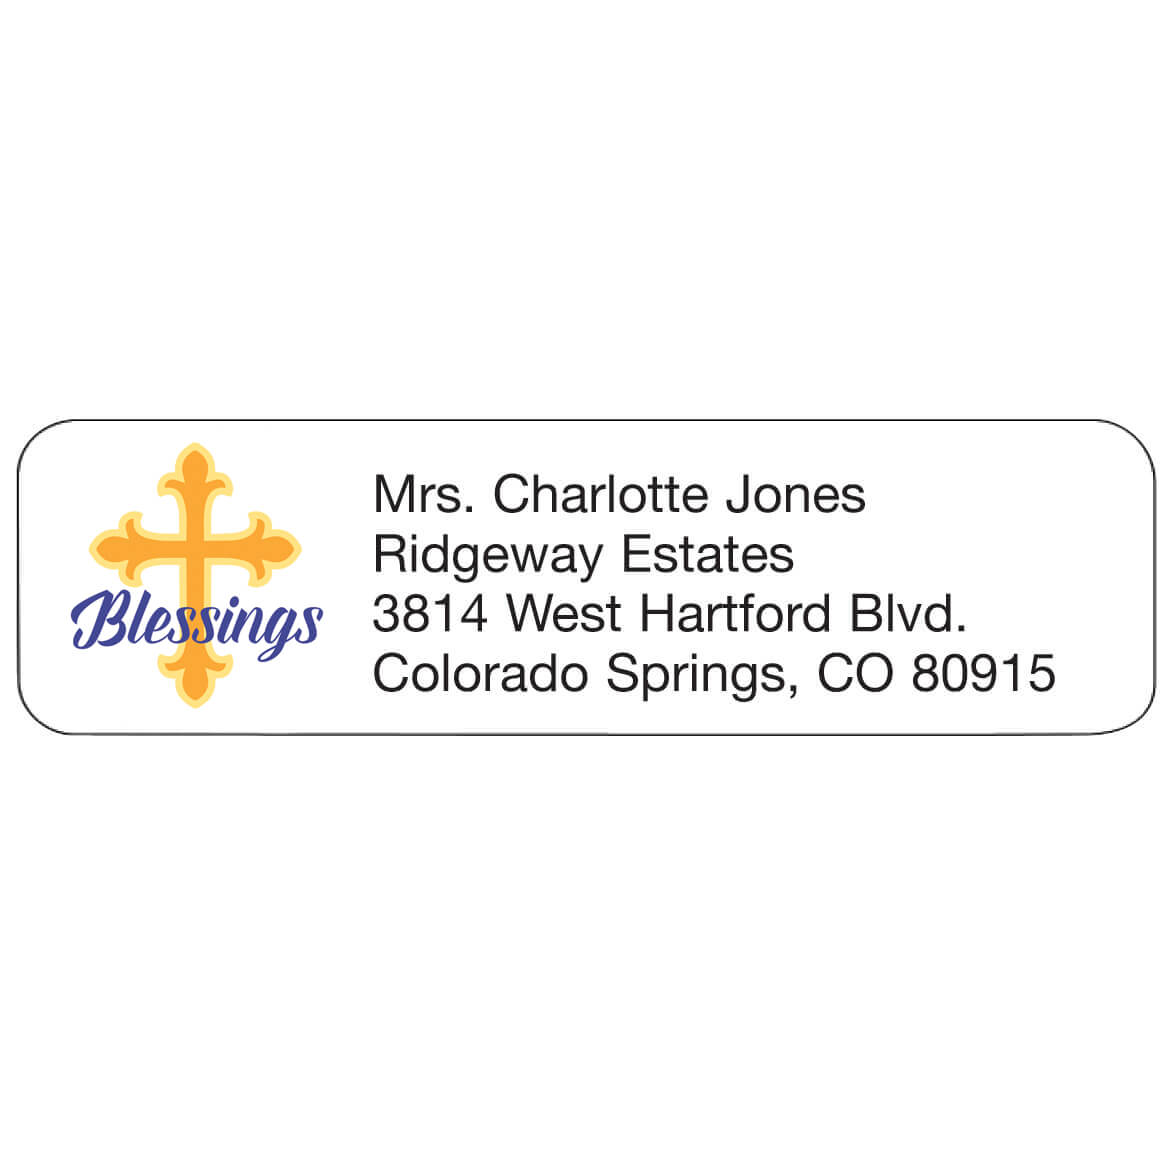 Personal Design Labels Blessings-358932